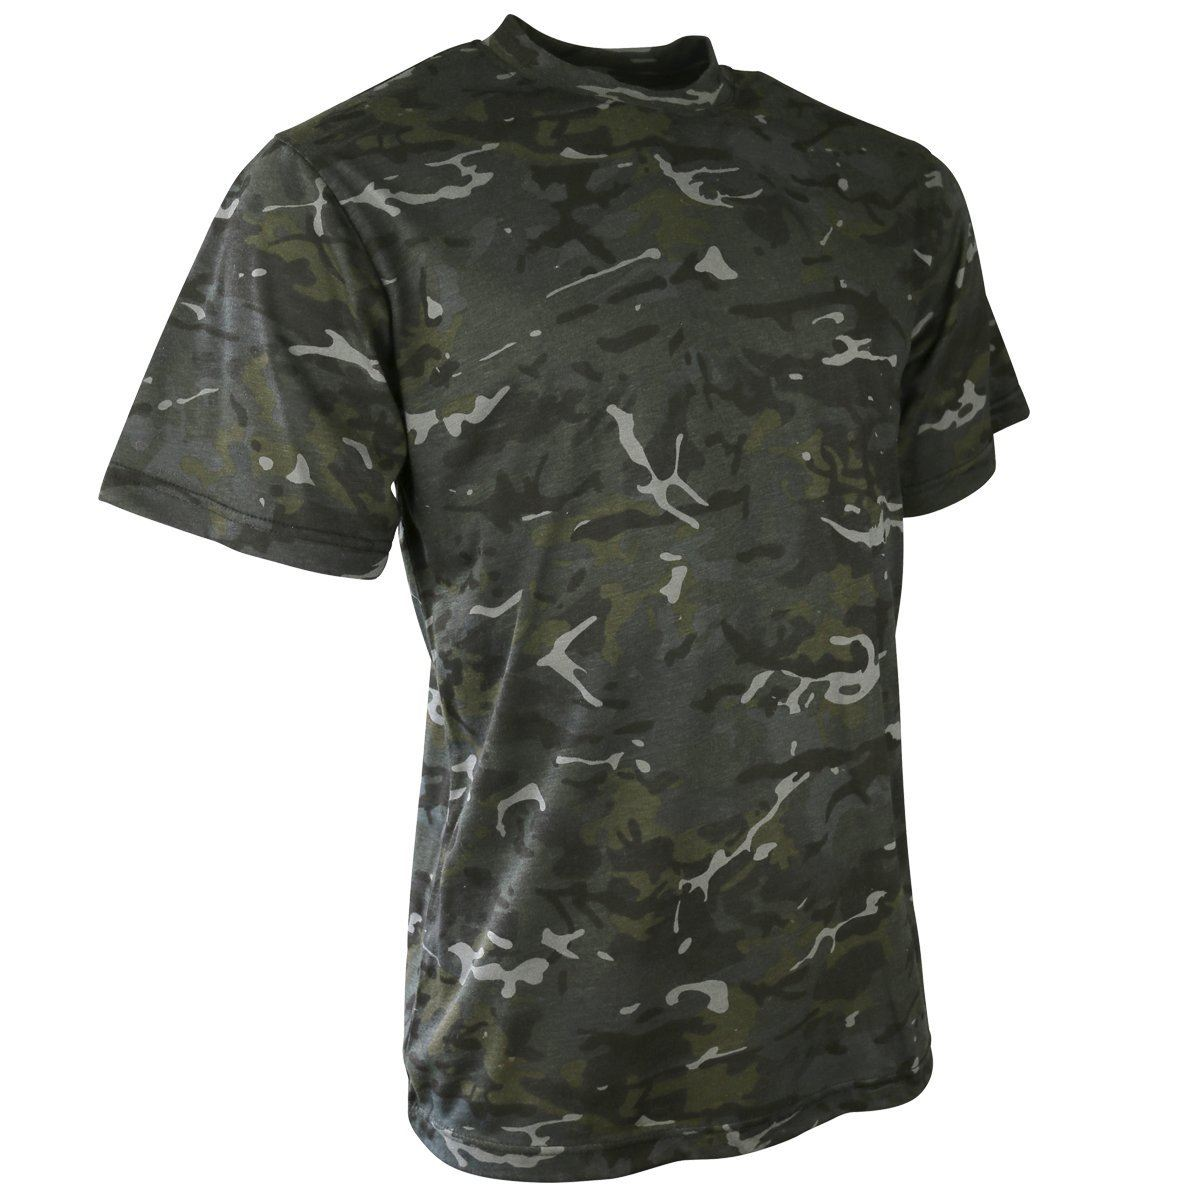 KOMBAT UK CAMO MILITARY T-SHIRT MENS HUNTING FISHING BRITISH ARMY ... 8db82bb4c06